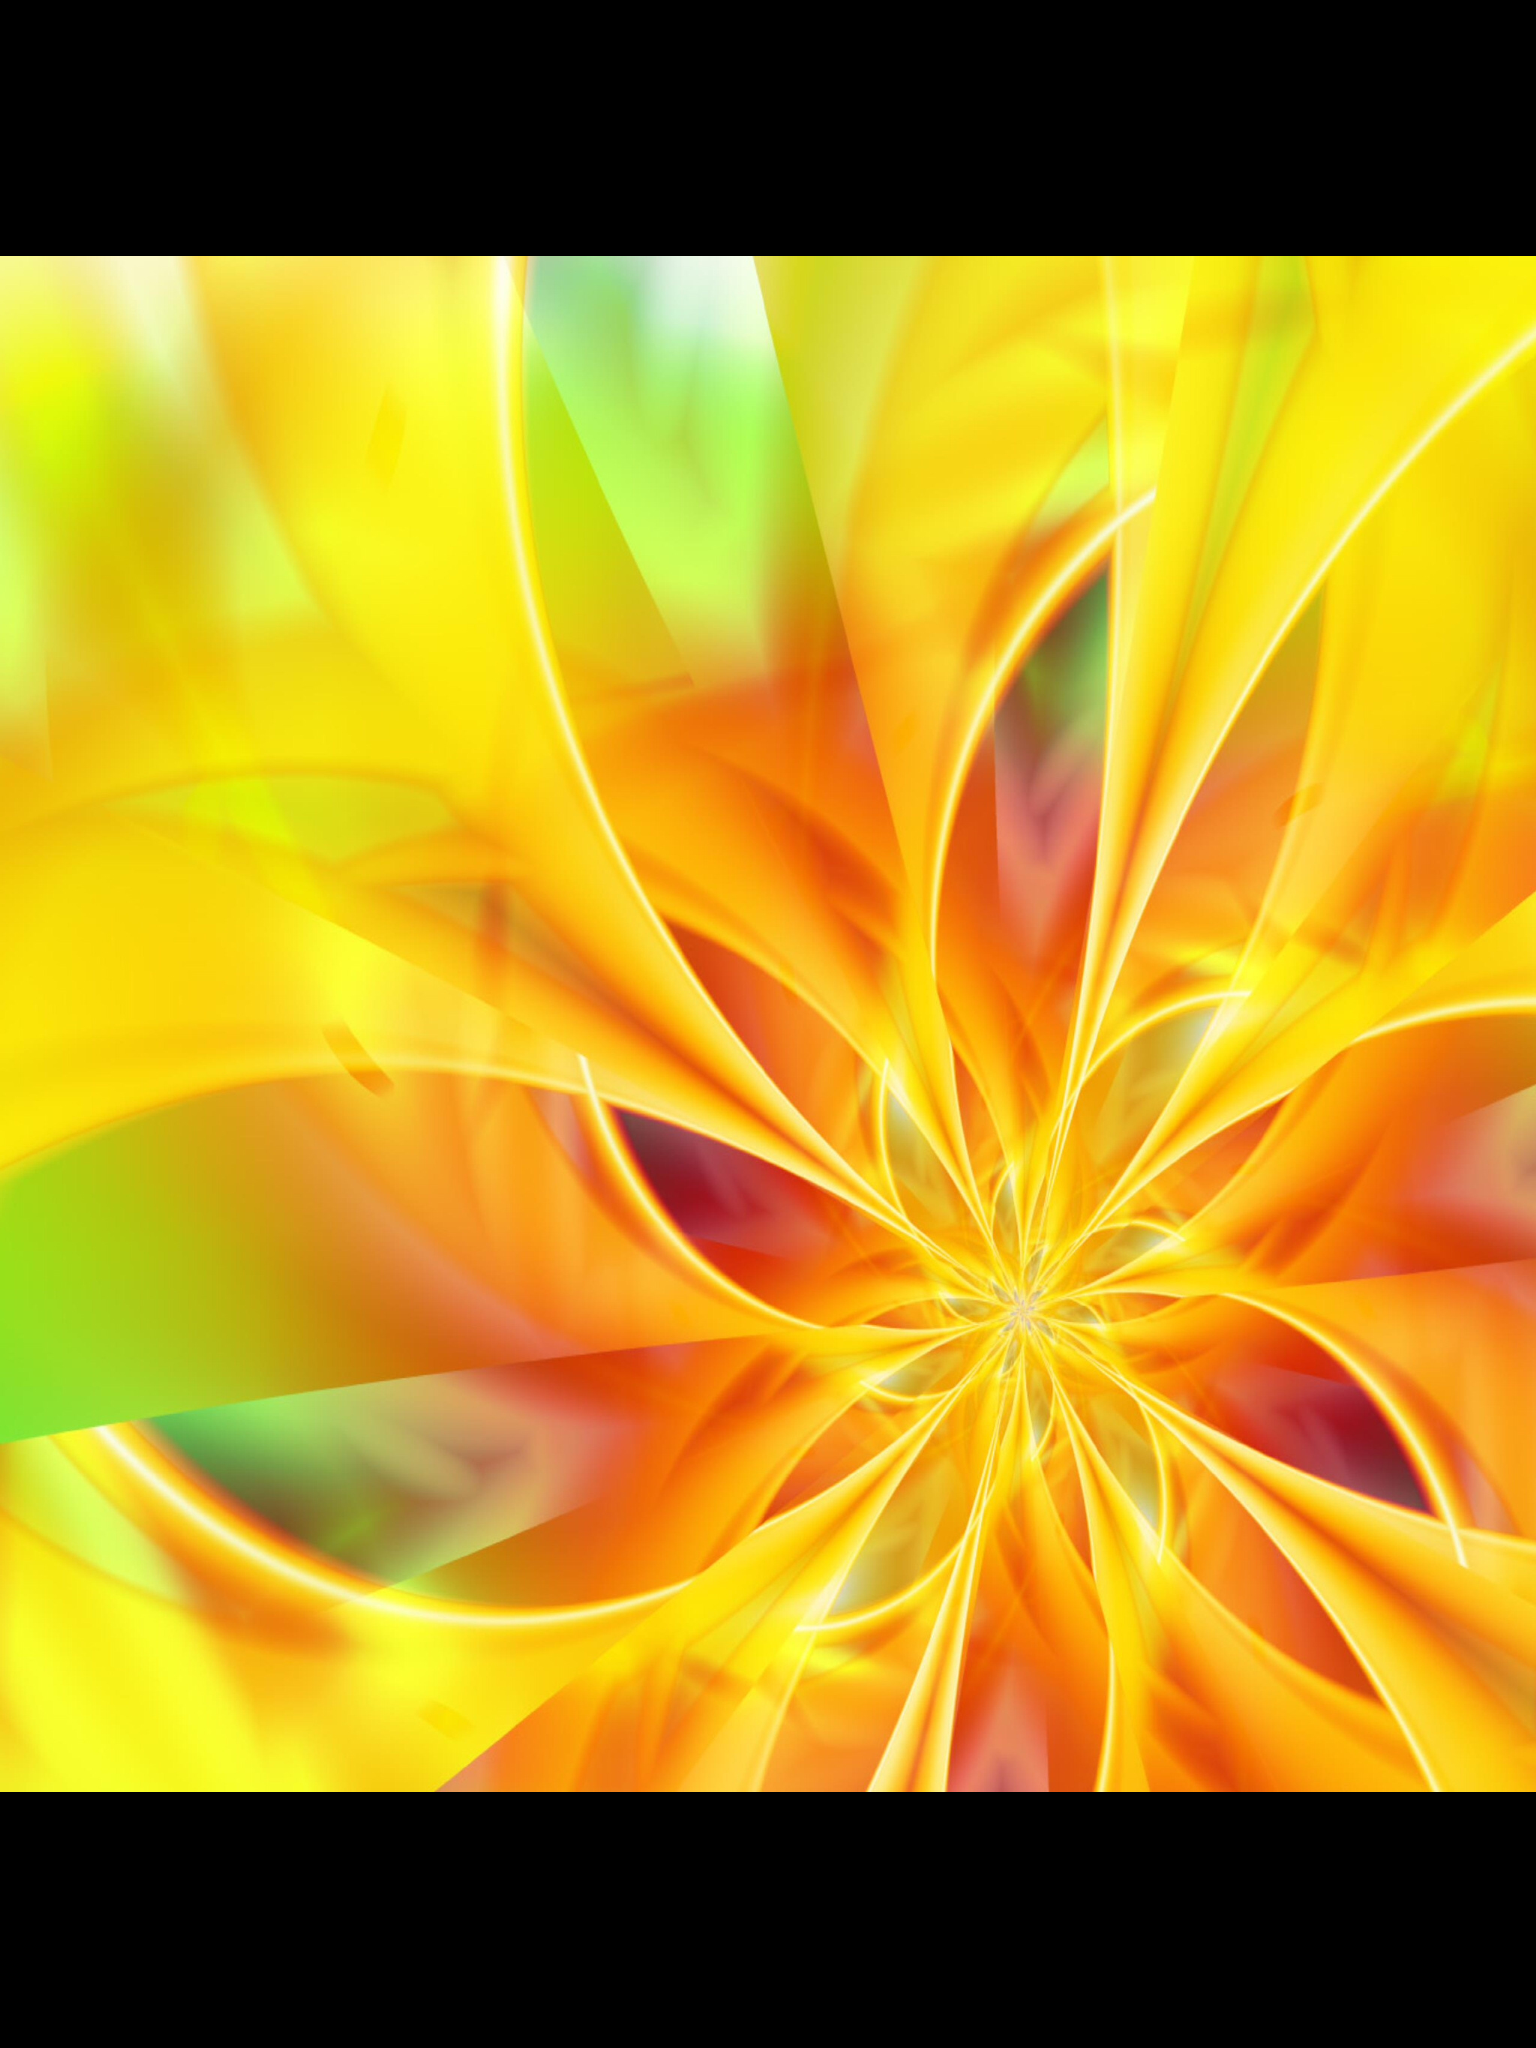 Pin By Sherry Carrow On Fractal Yellow Wallpaper Abstract Wallpaper Backgrounds Abstract Wallpaper